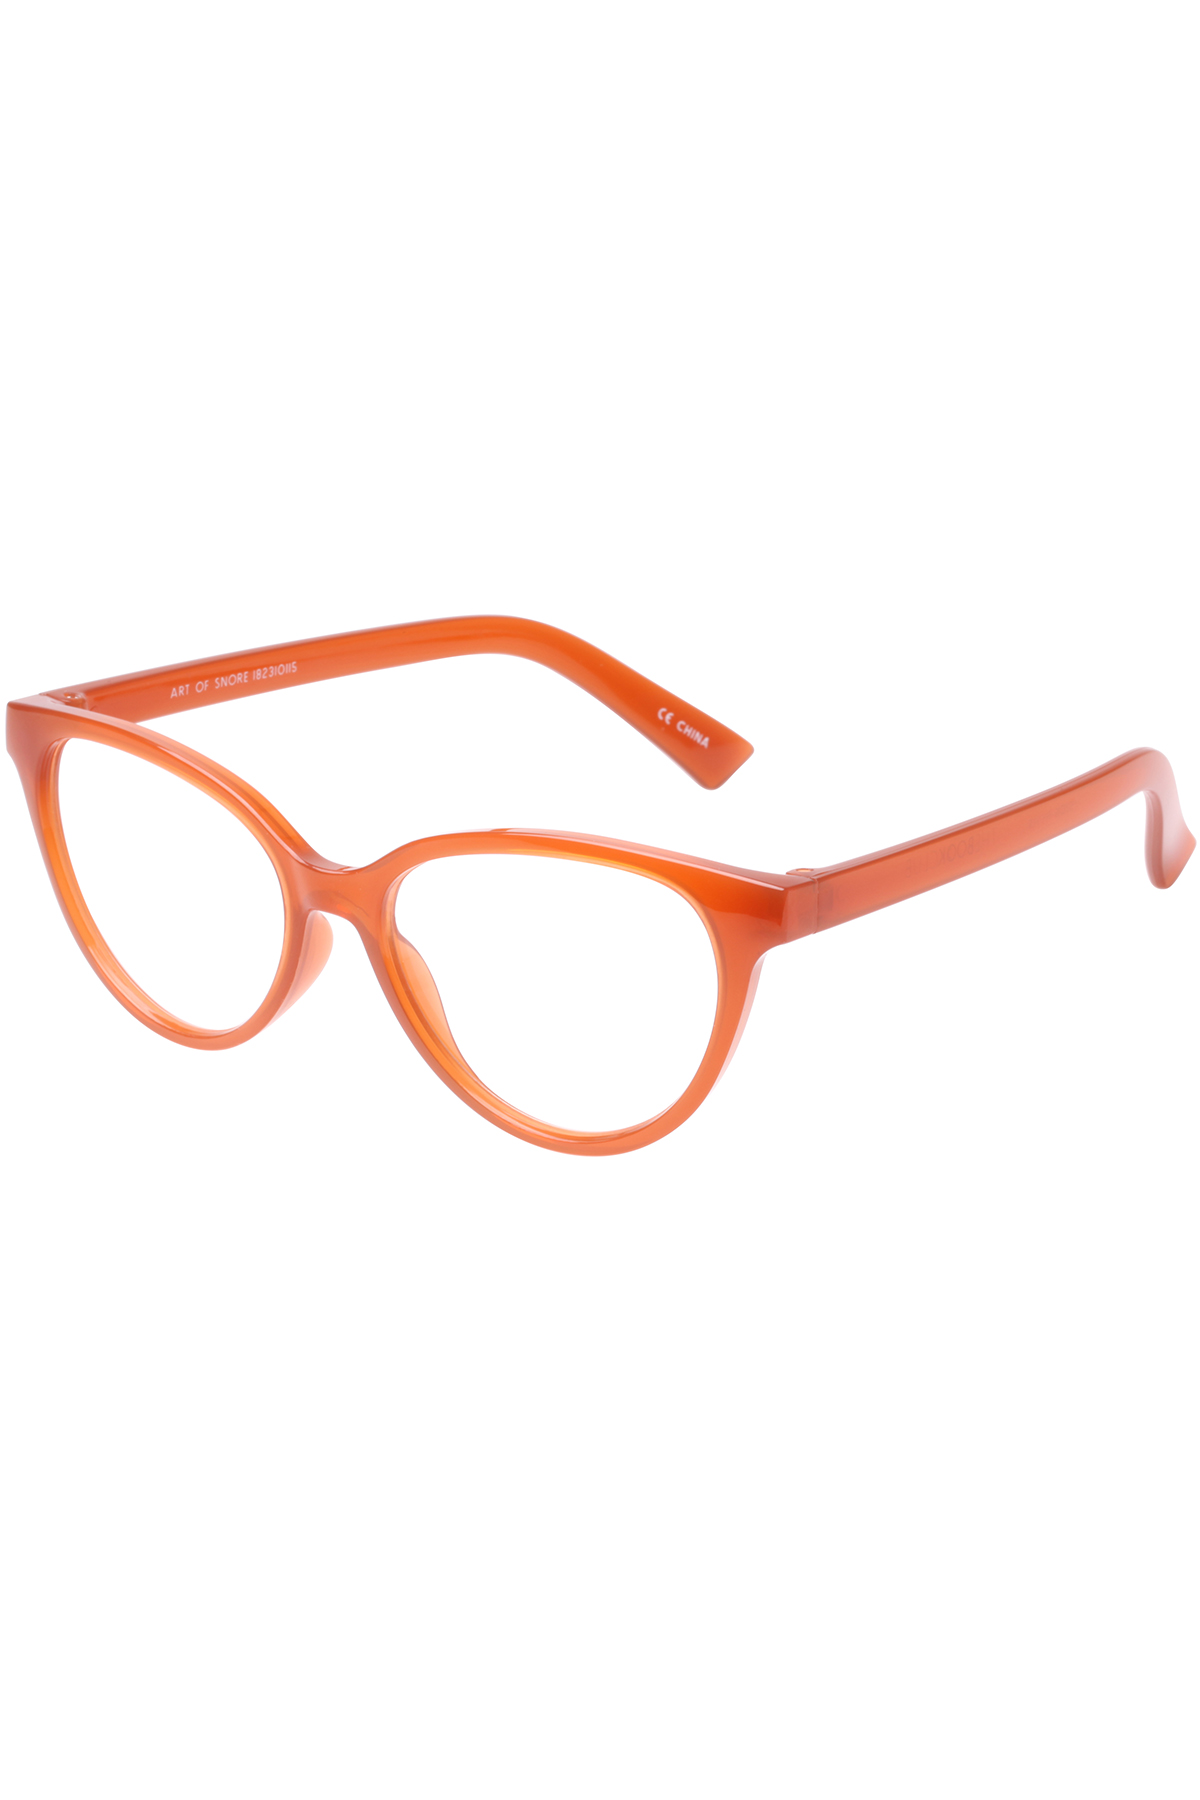 The Art of Snore Blue Light Filter Glasses (0.0 Strength) - Saffron 1